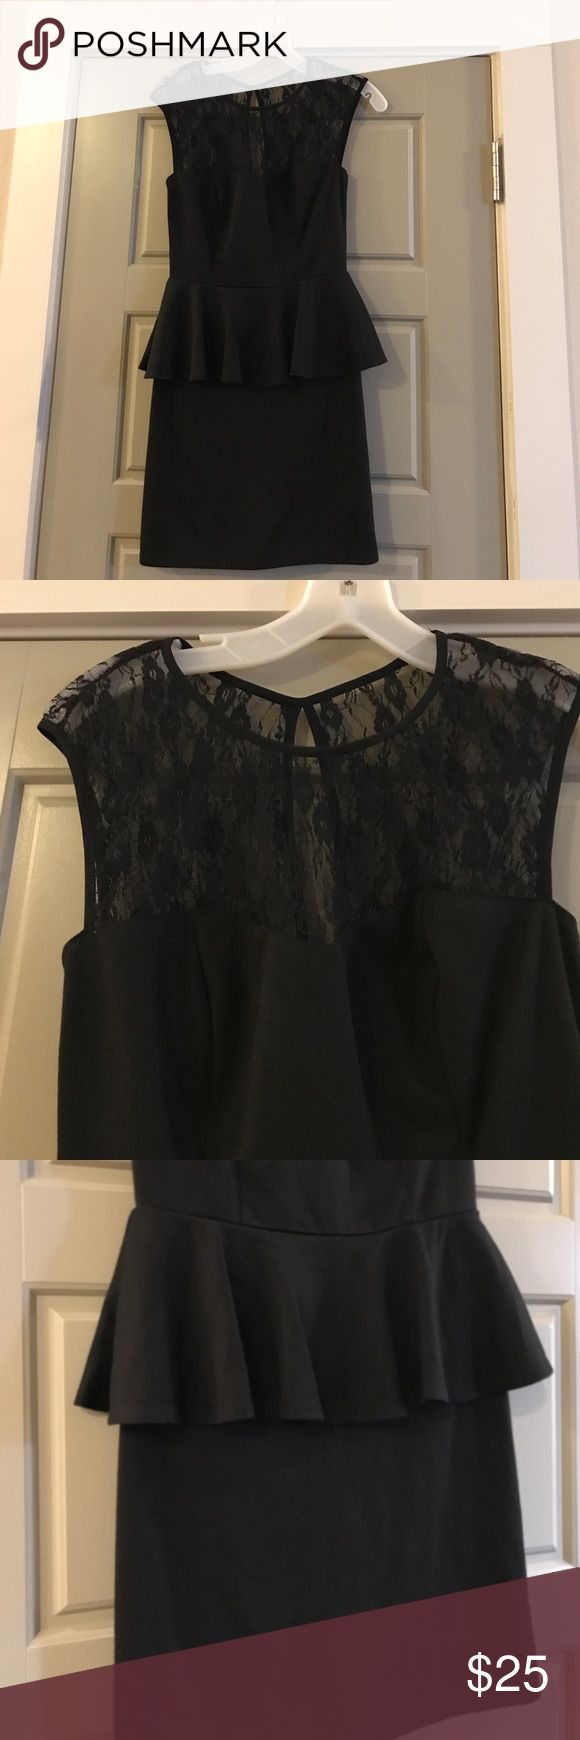 EUC Black peplum dress w/ lace over shoulders EUC Black peplum dress with delicate lace over the shoulders. Dress it up or down for any fiction you are attending. Looks killer with heels! Very simple LBD. Speechless Dresses